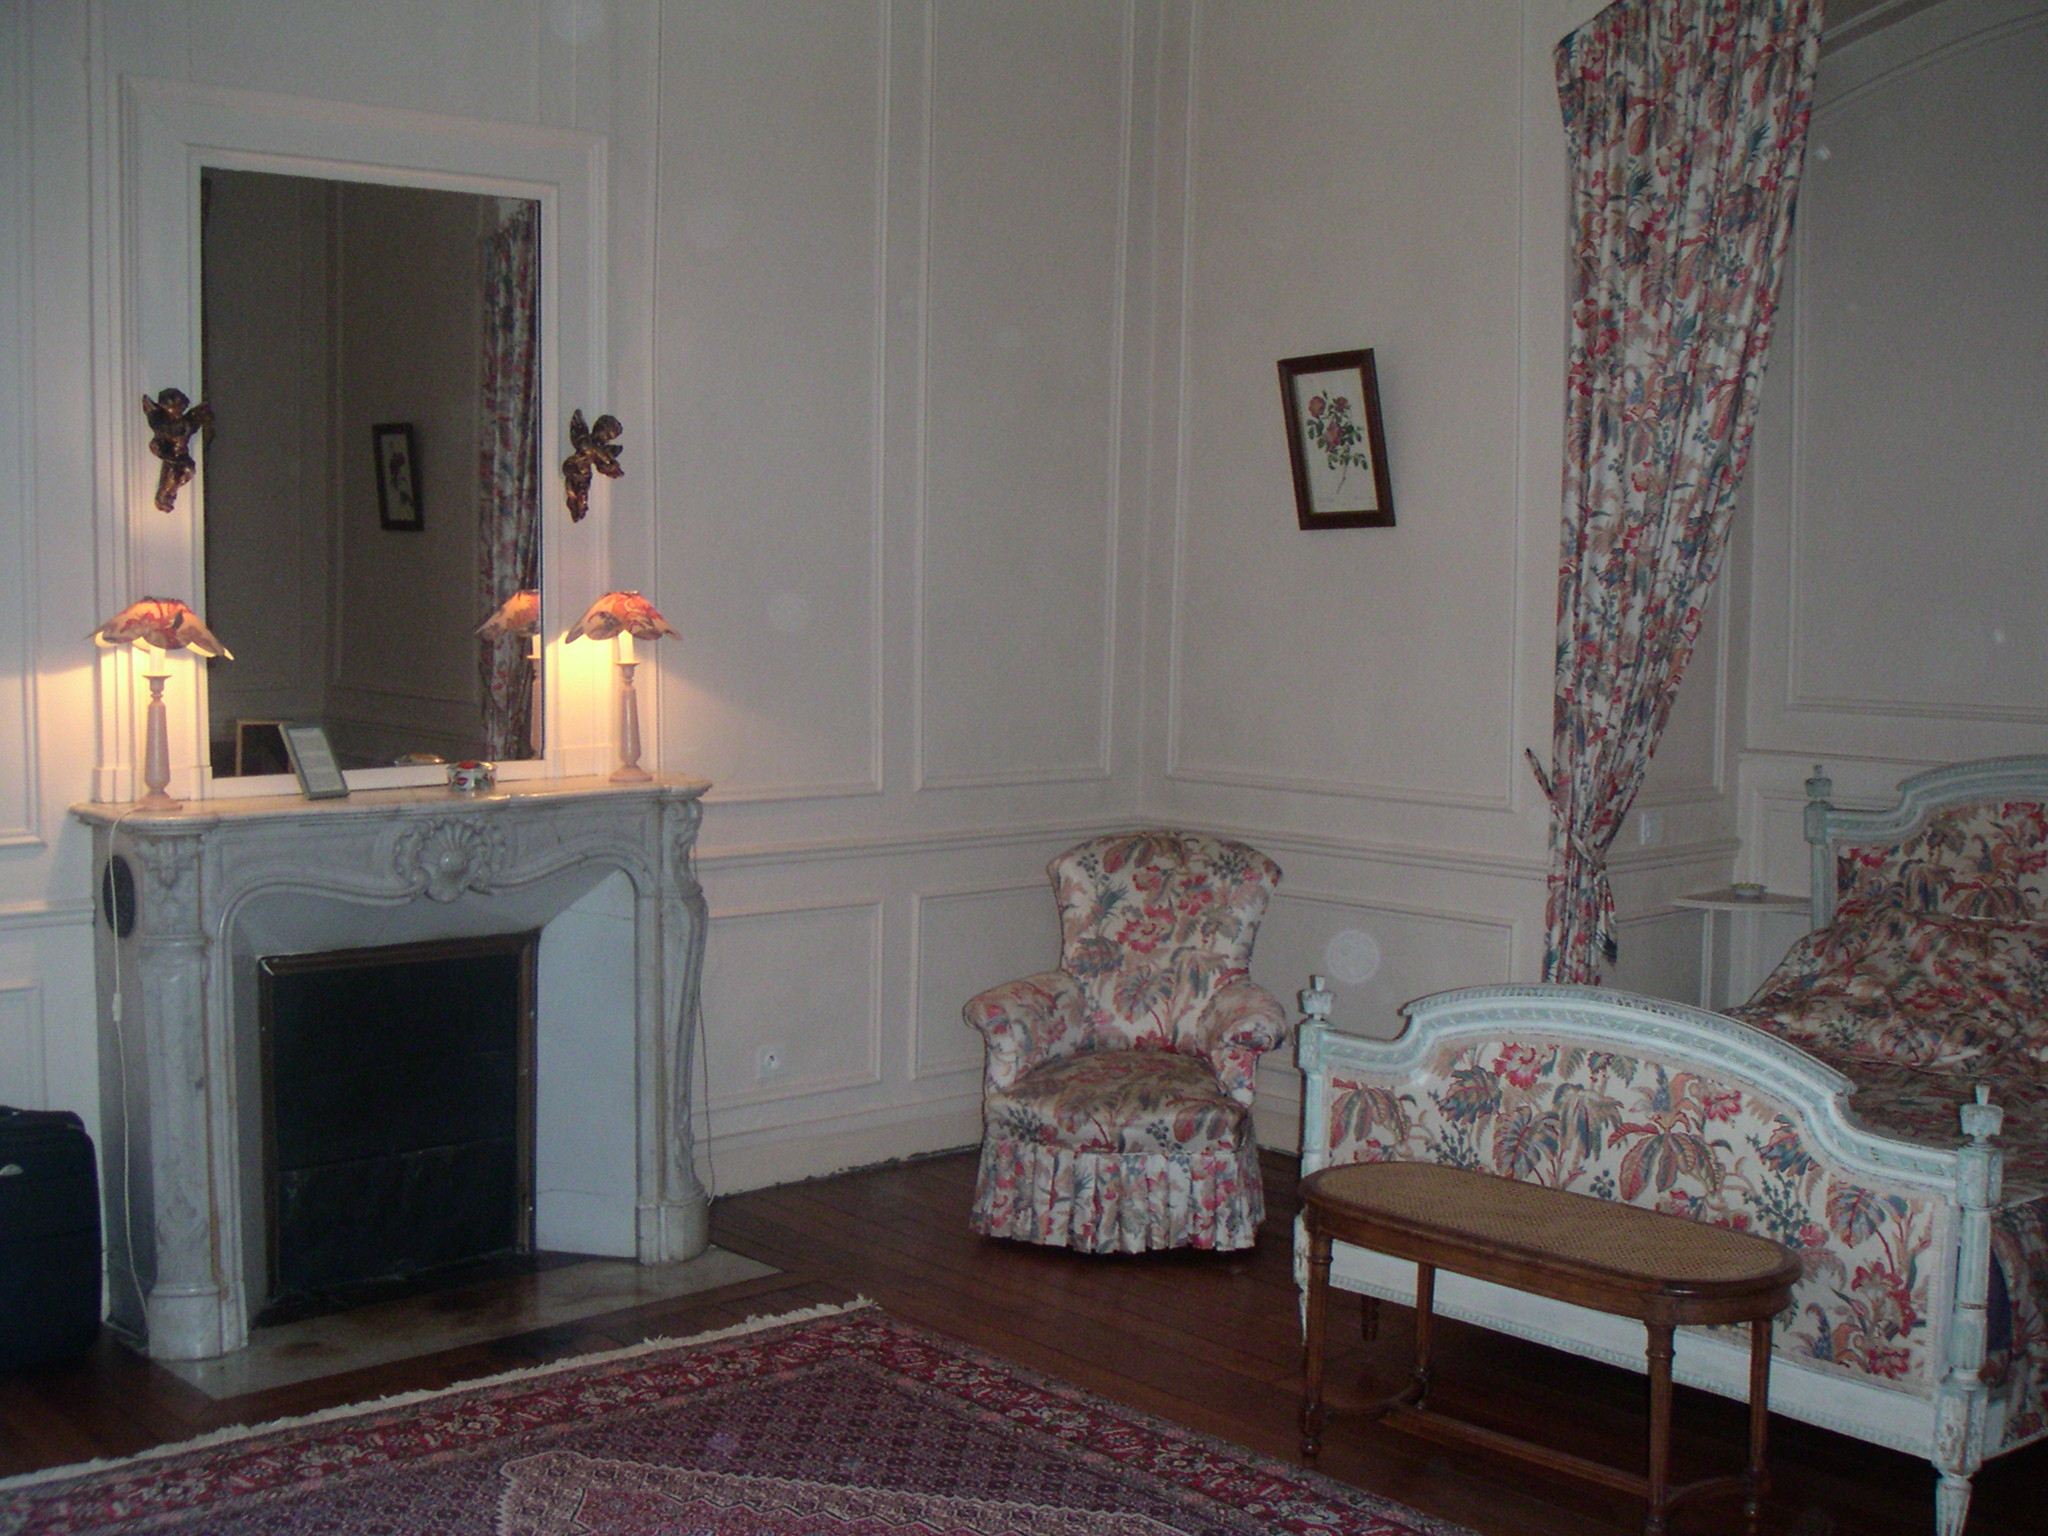 Our château bedroom on my 50th birthday